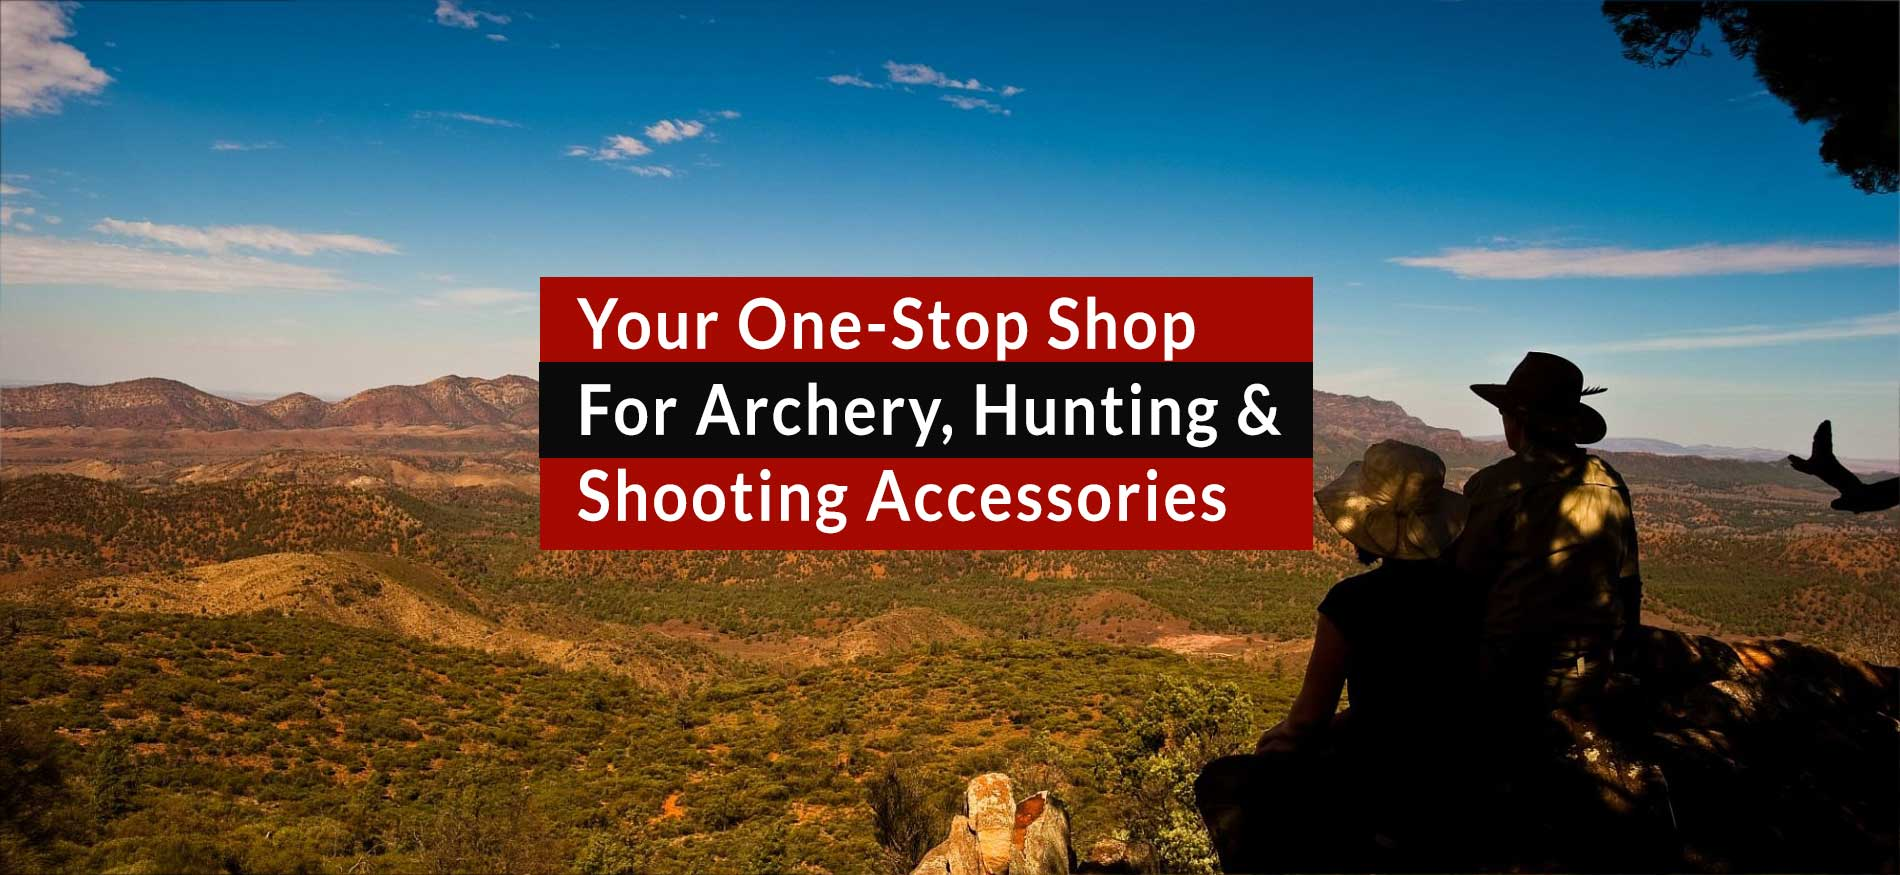 Achery, Hunting and Shooting supplies online